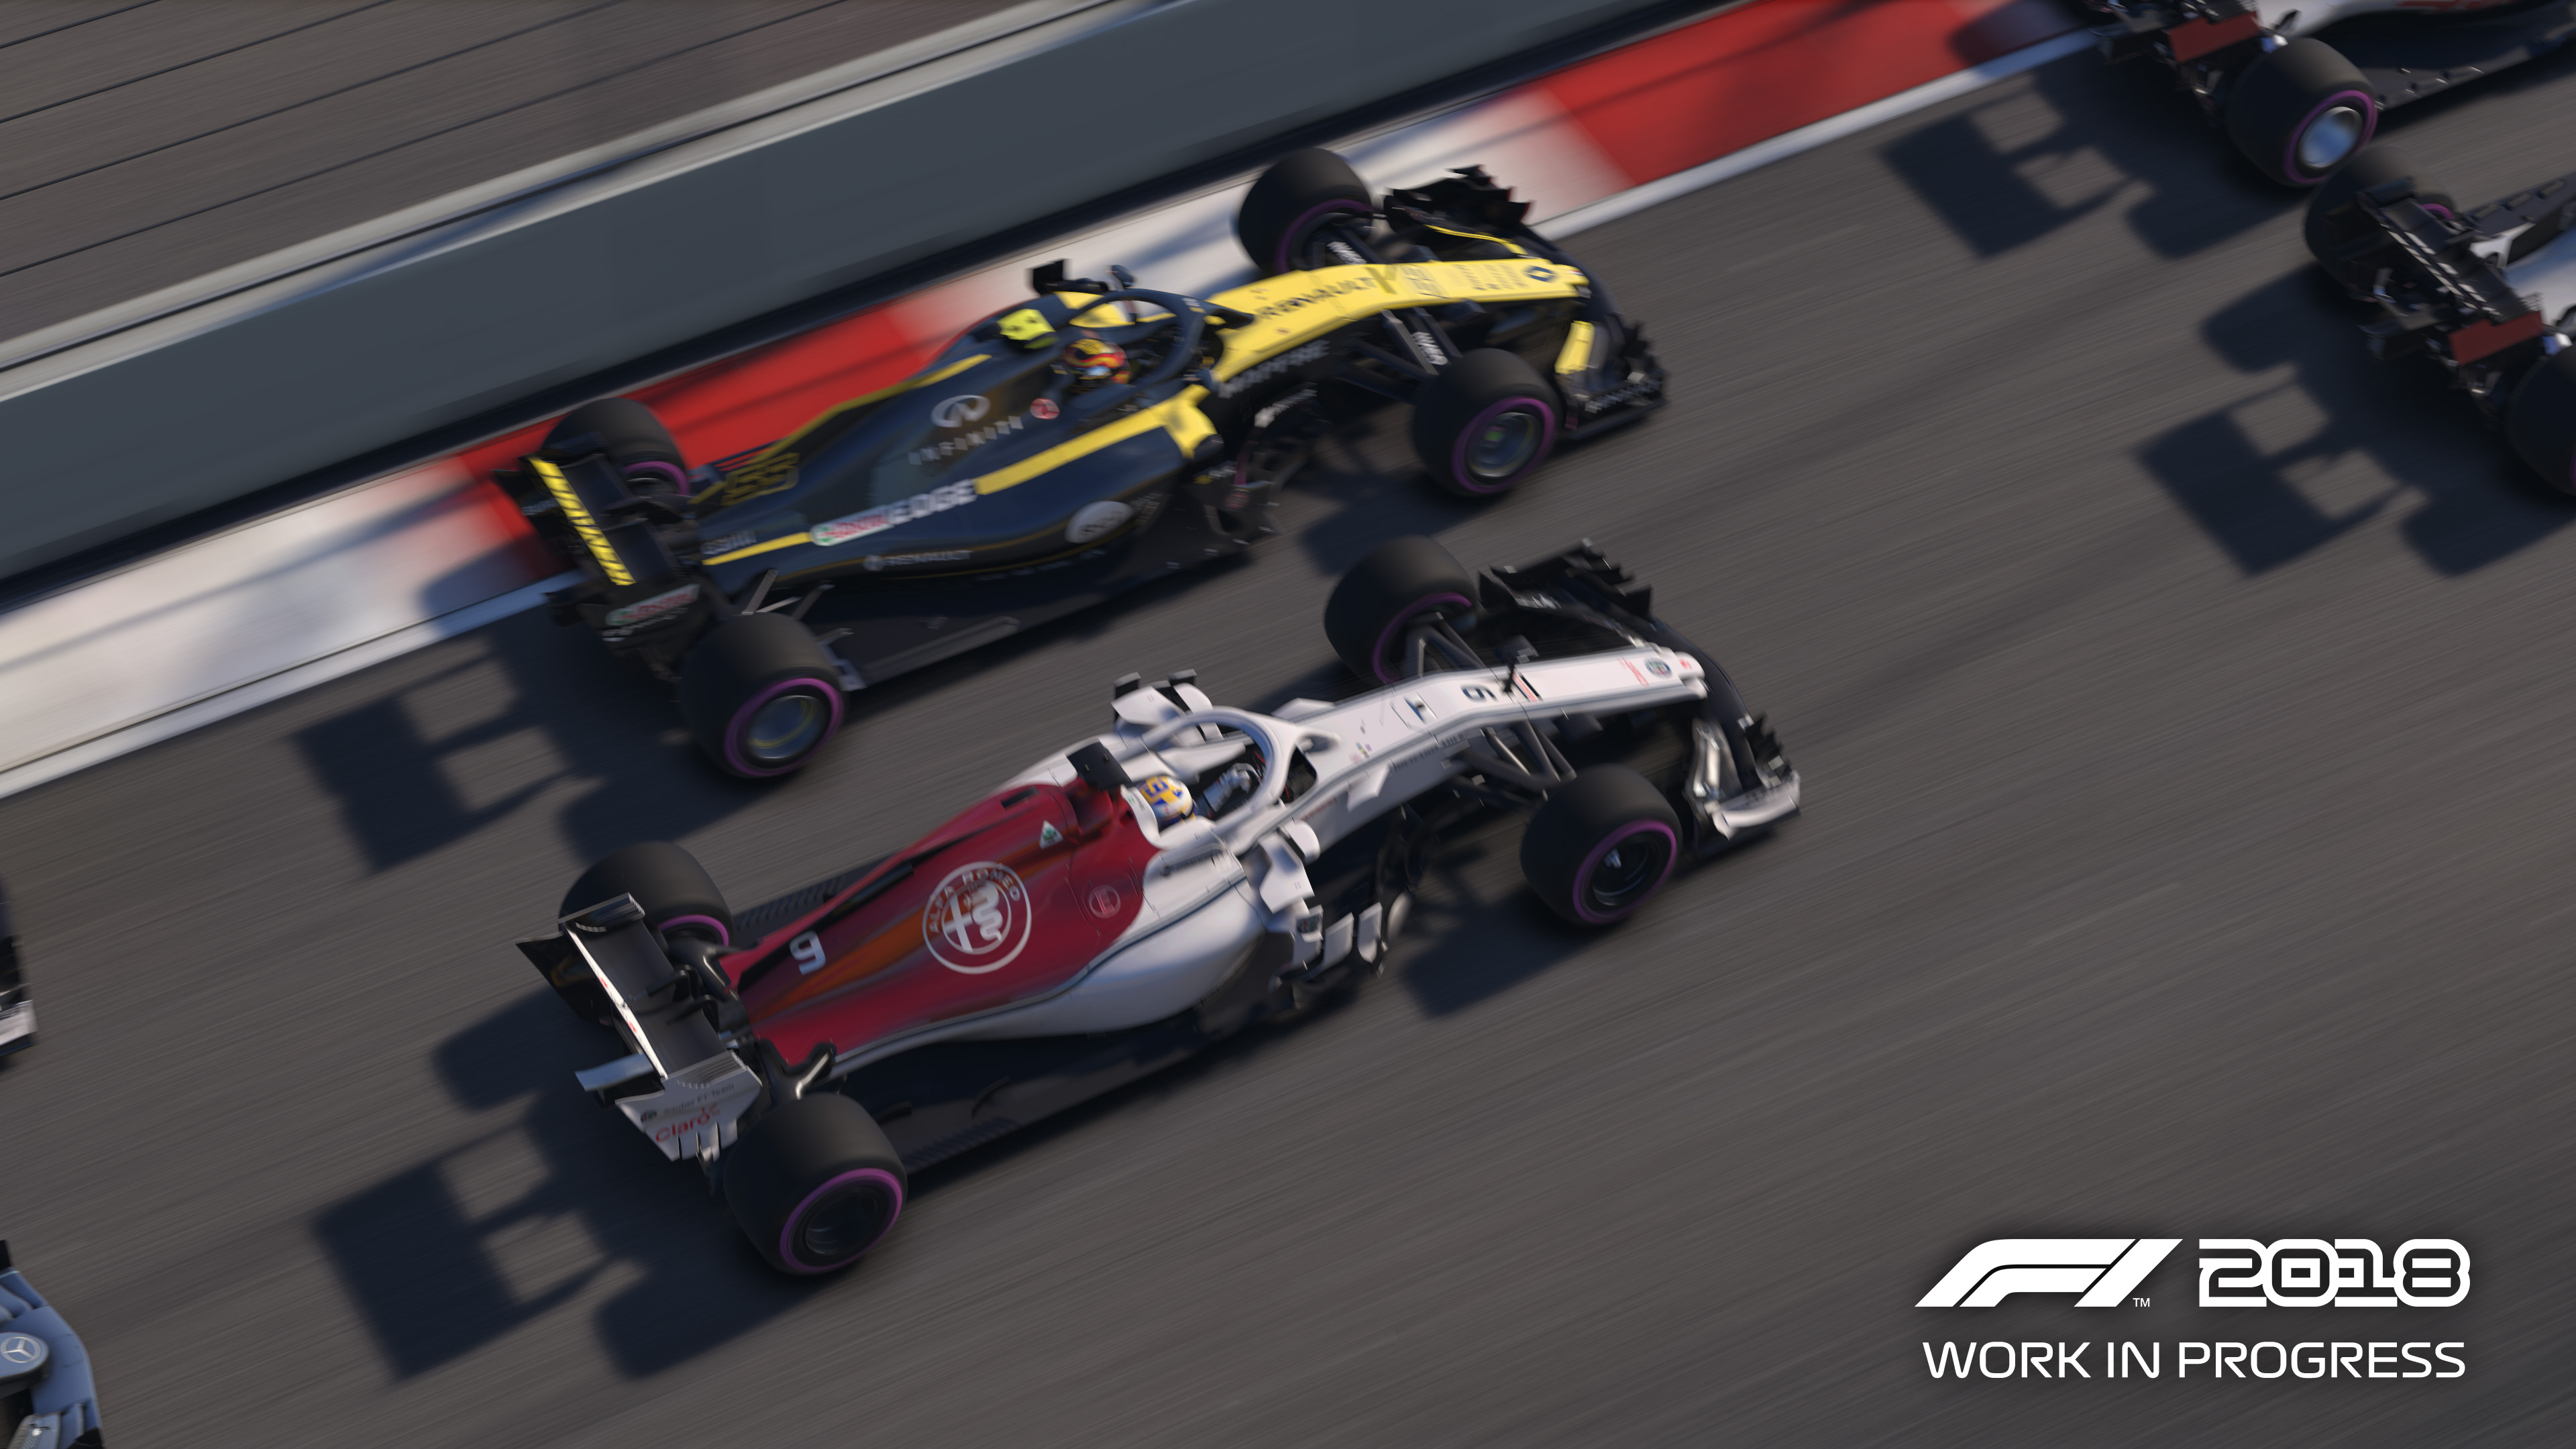 F1 2018's career mode will be spiced up by end-of-season rules changes